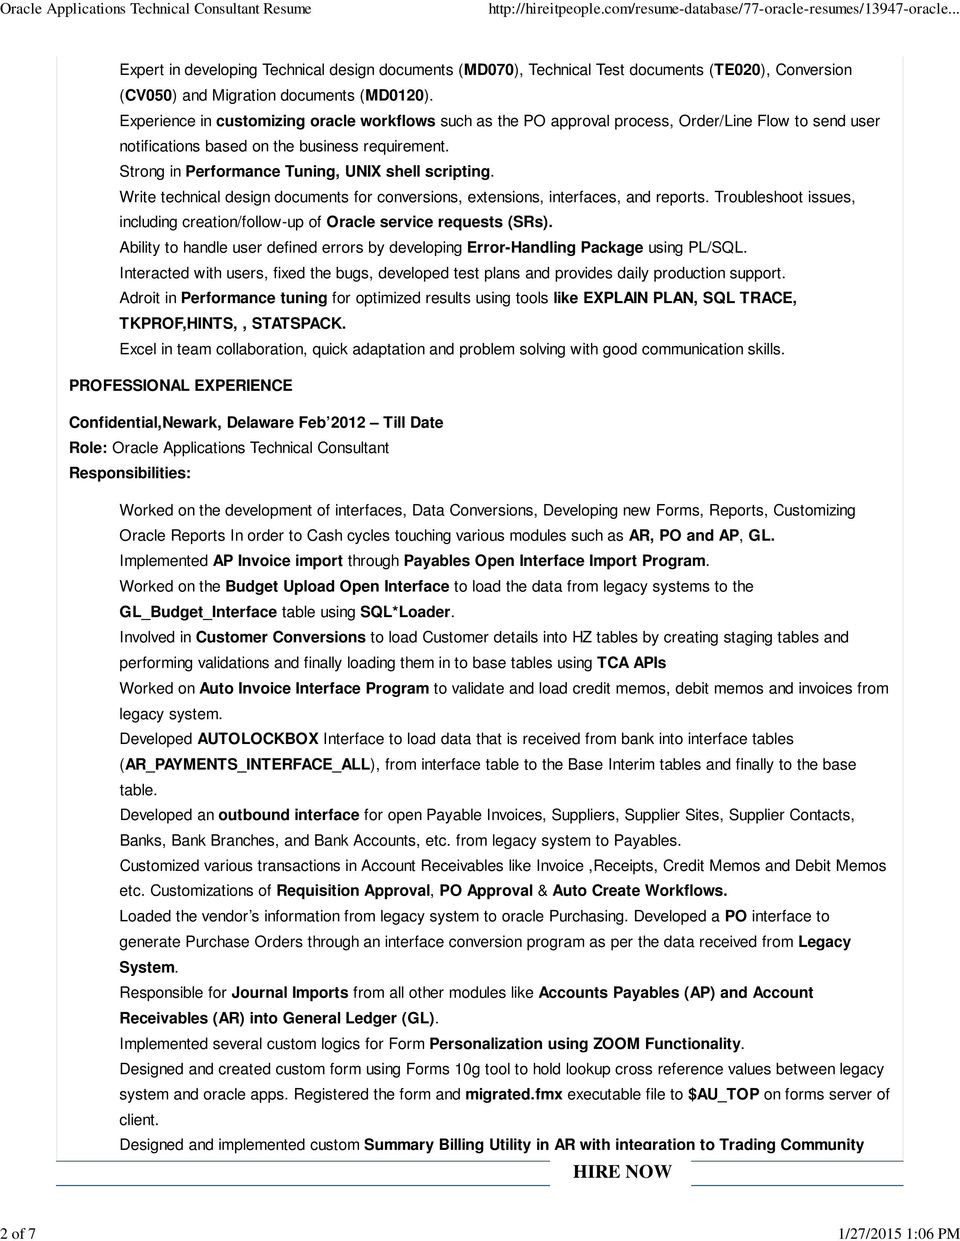 Oracle applications technical consultant resumeml